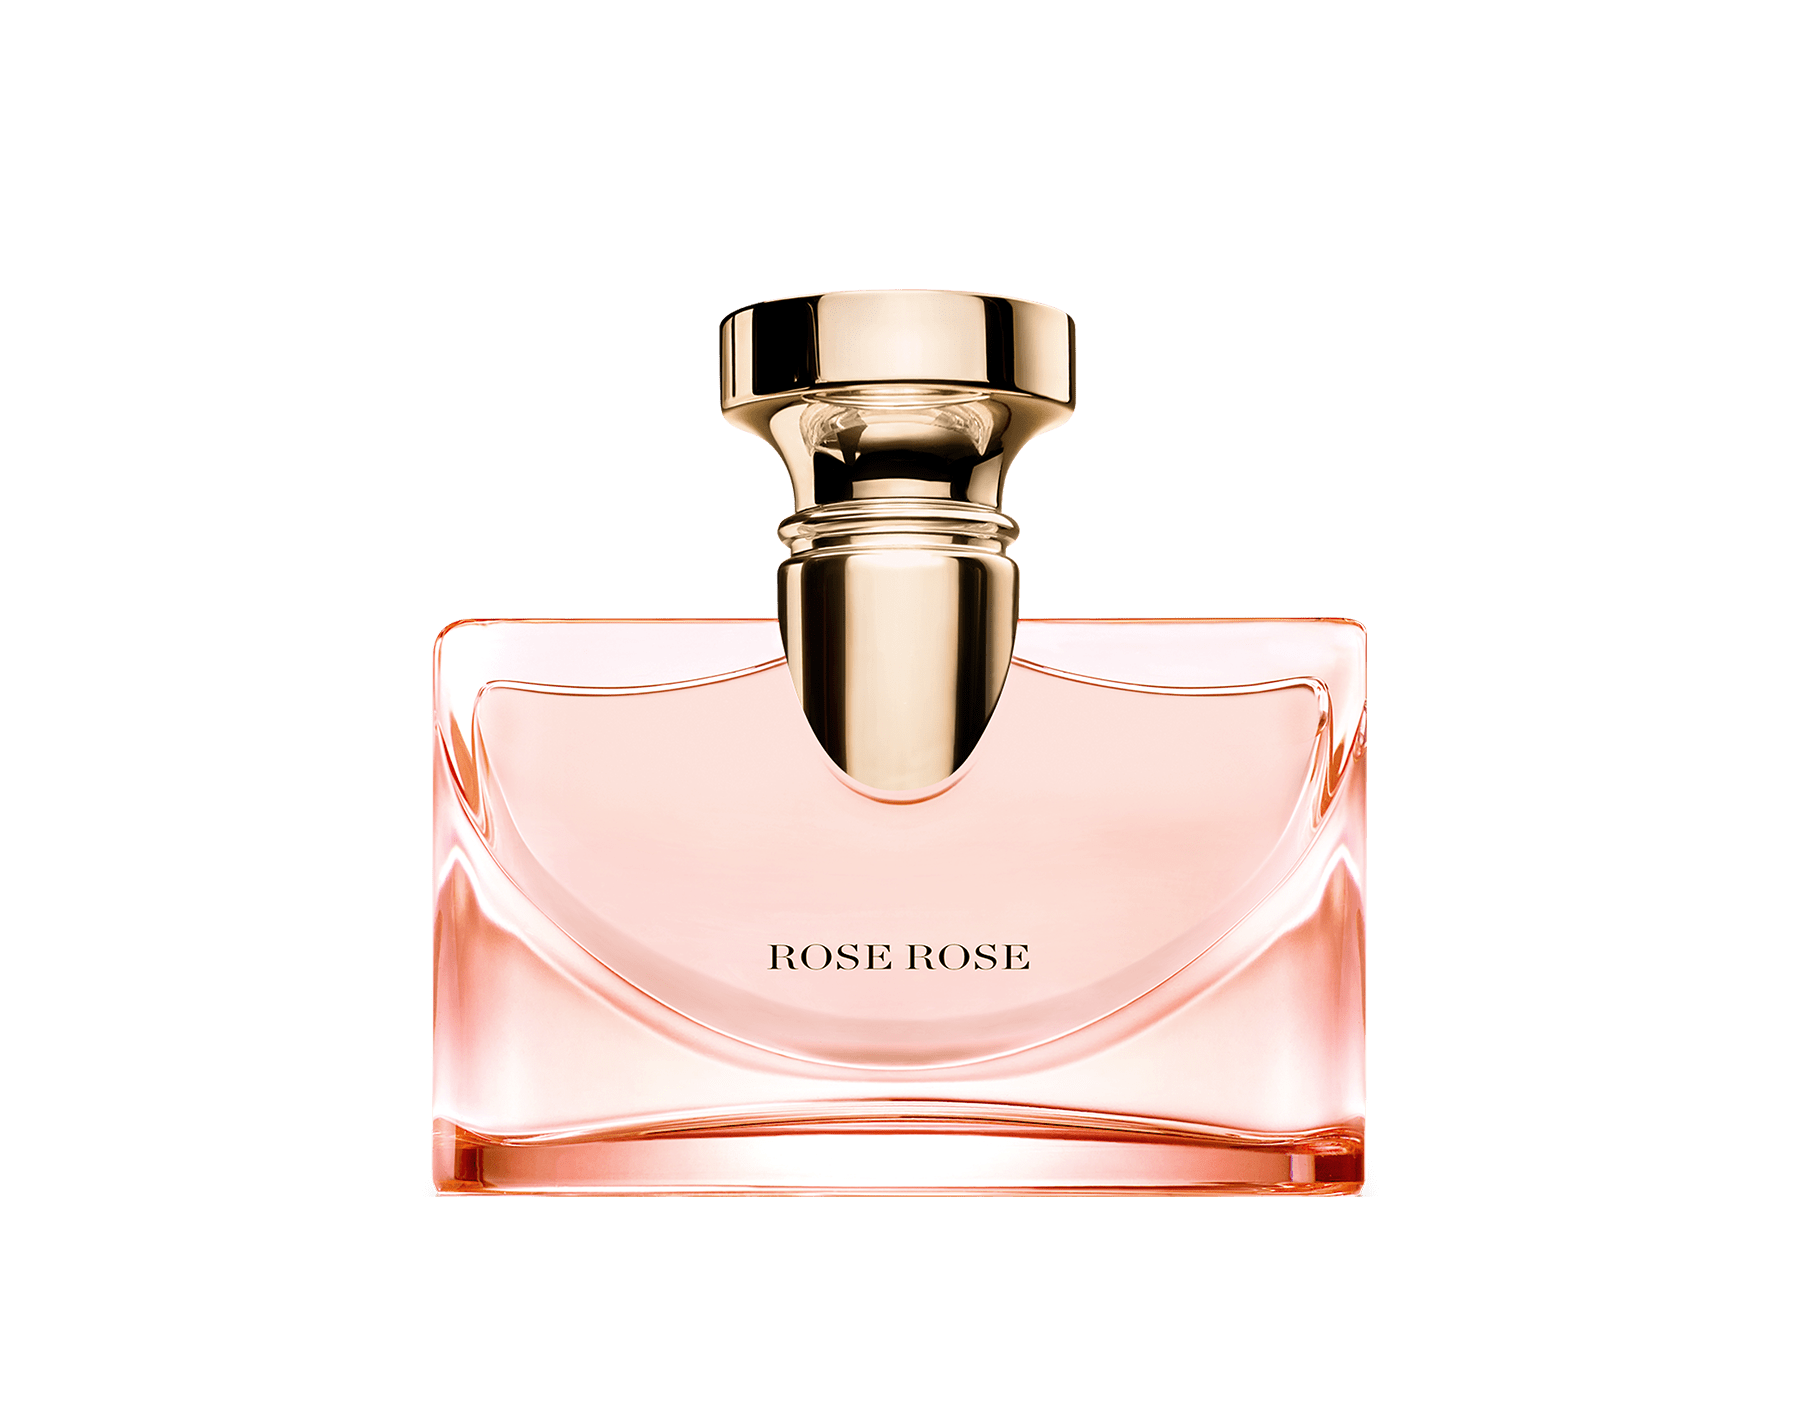 An ultra-feminine rose floral eau de parfum inspired by the most celebrated flower, the legendary Damask Rose. 97733 image 1